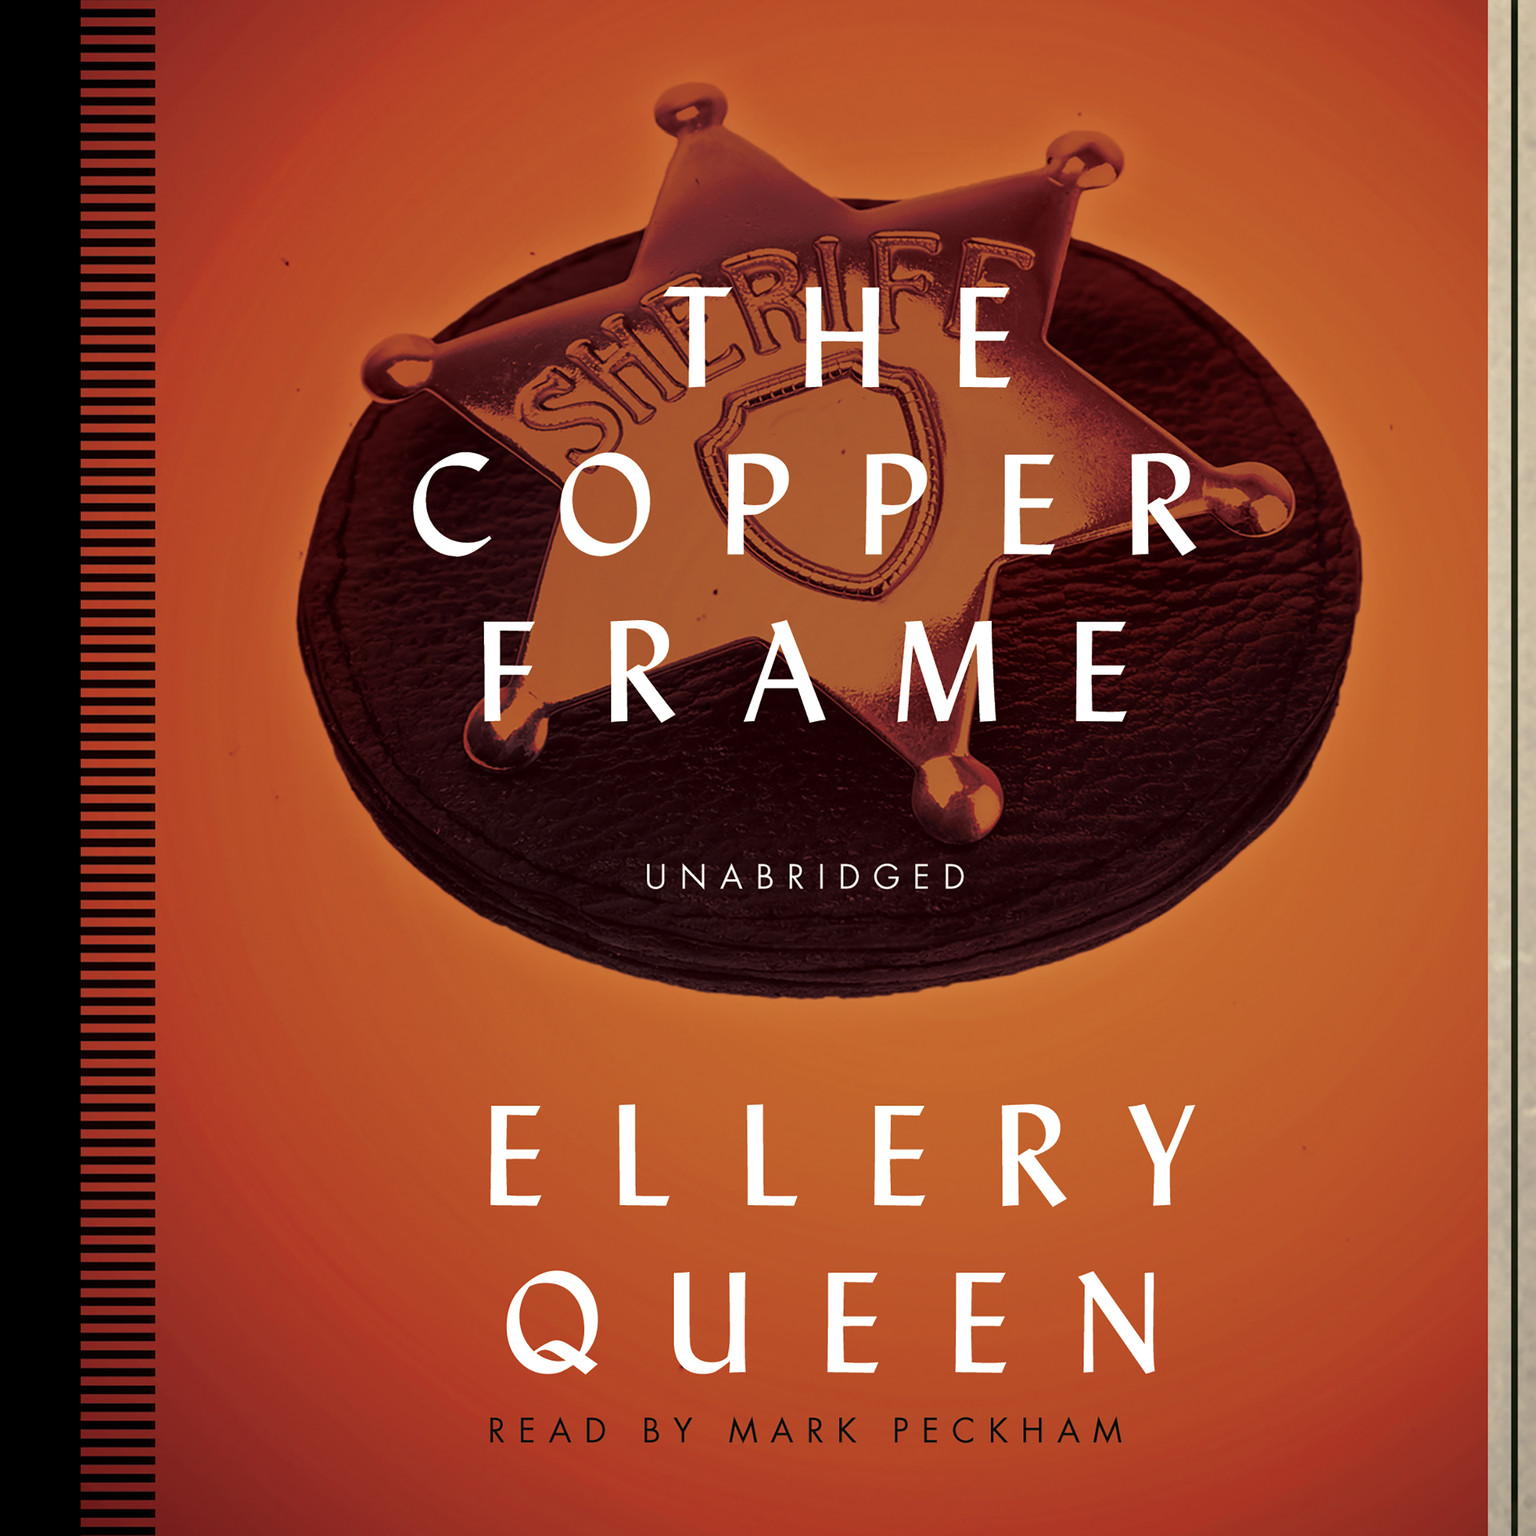 Printable The Copper Frame Audiobook Cover Art